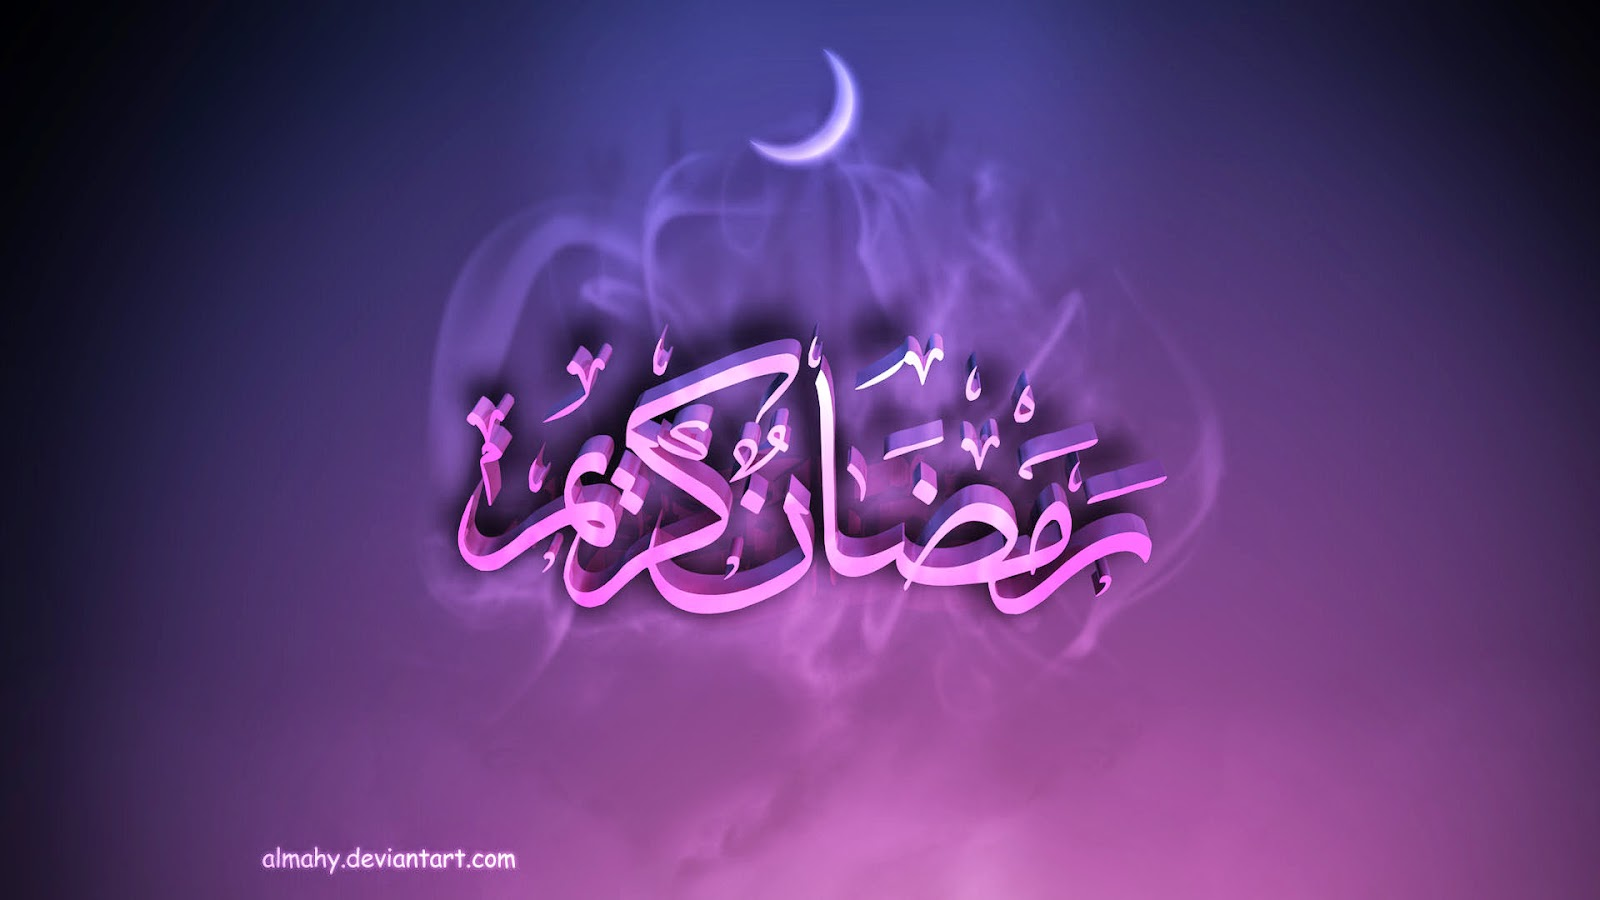 http://www.picturesnew.com/media/images/ramadan-2014-wallpaper.jpg